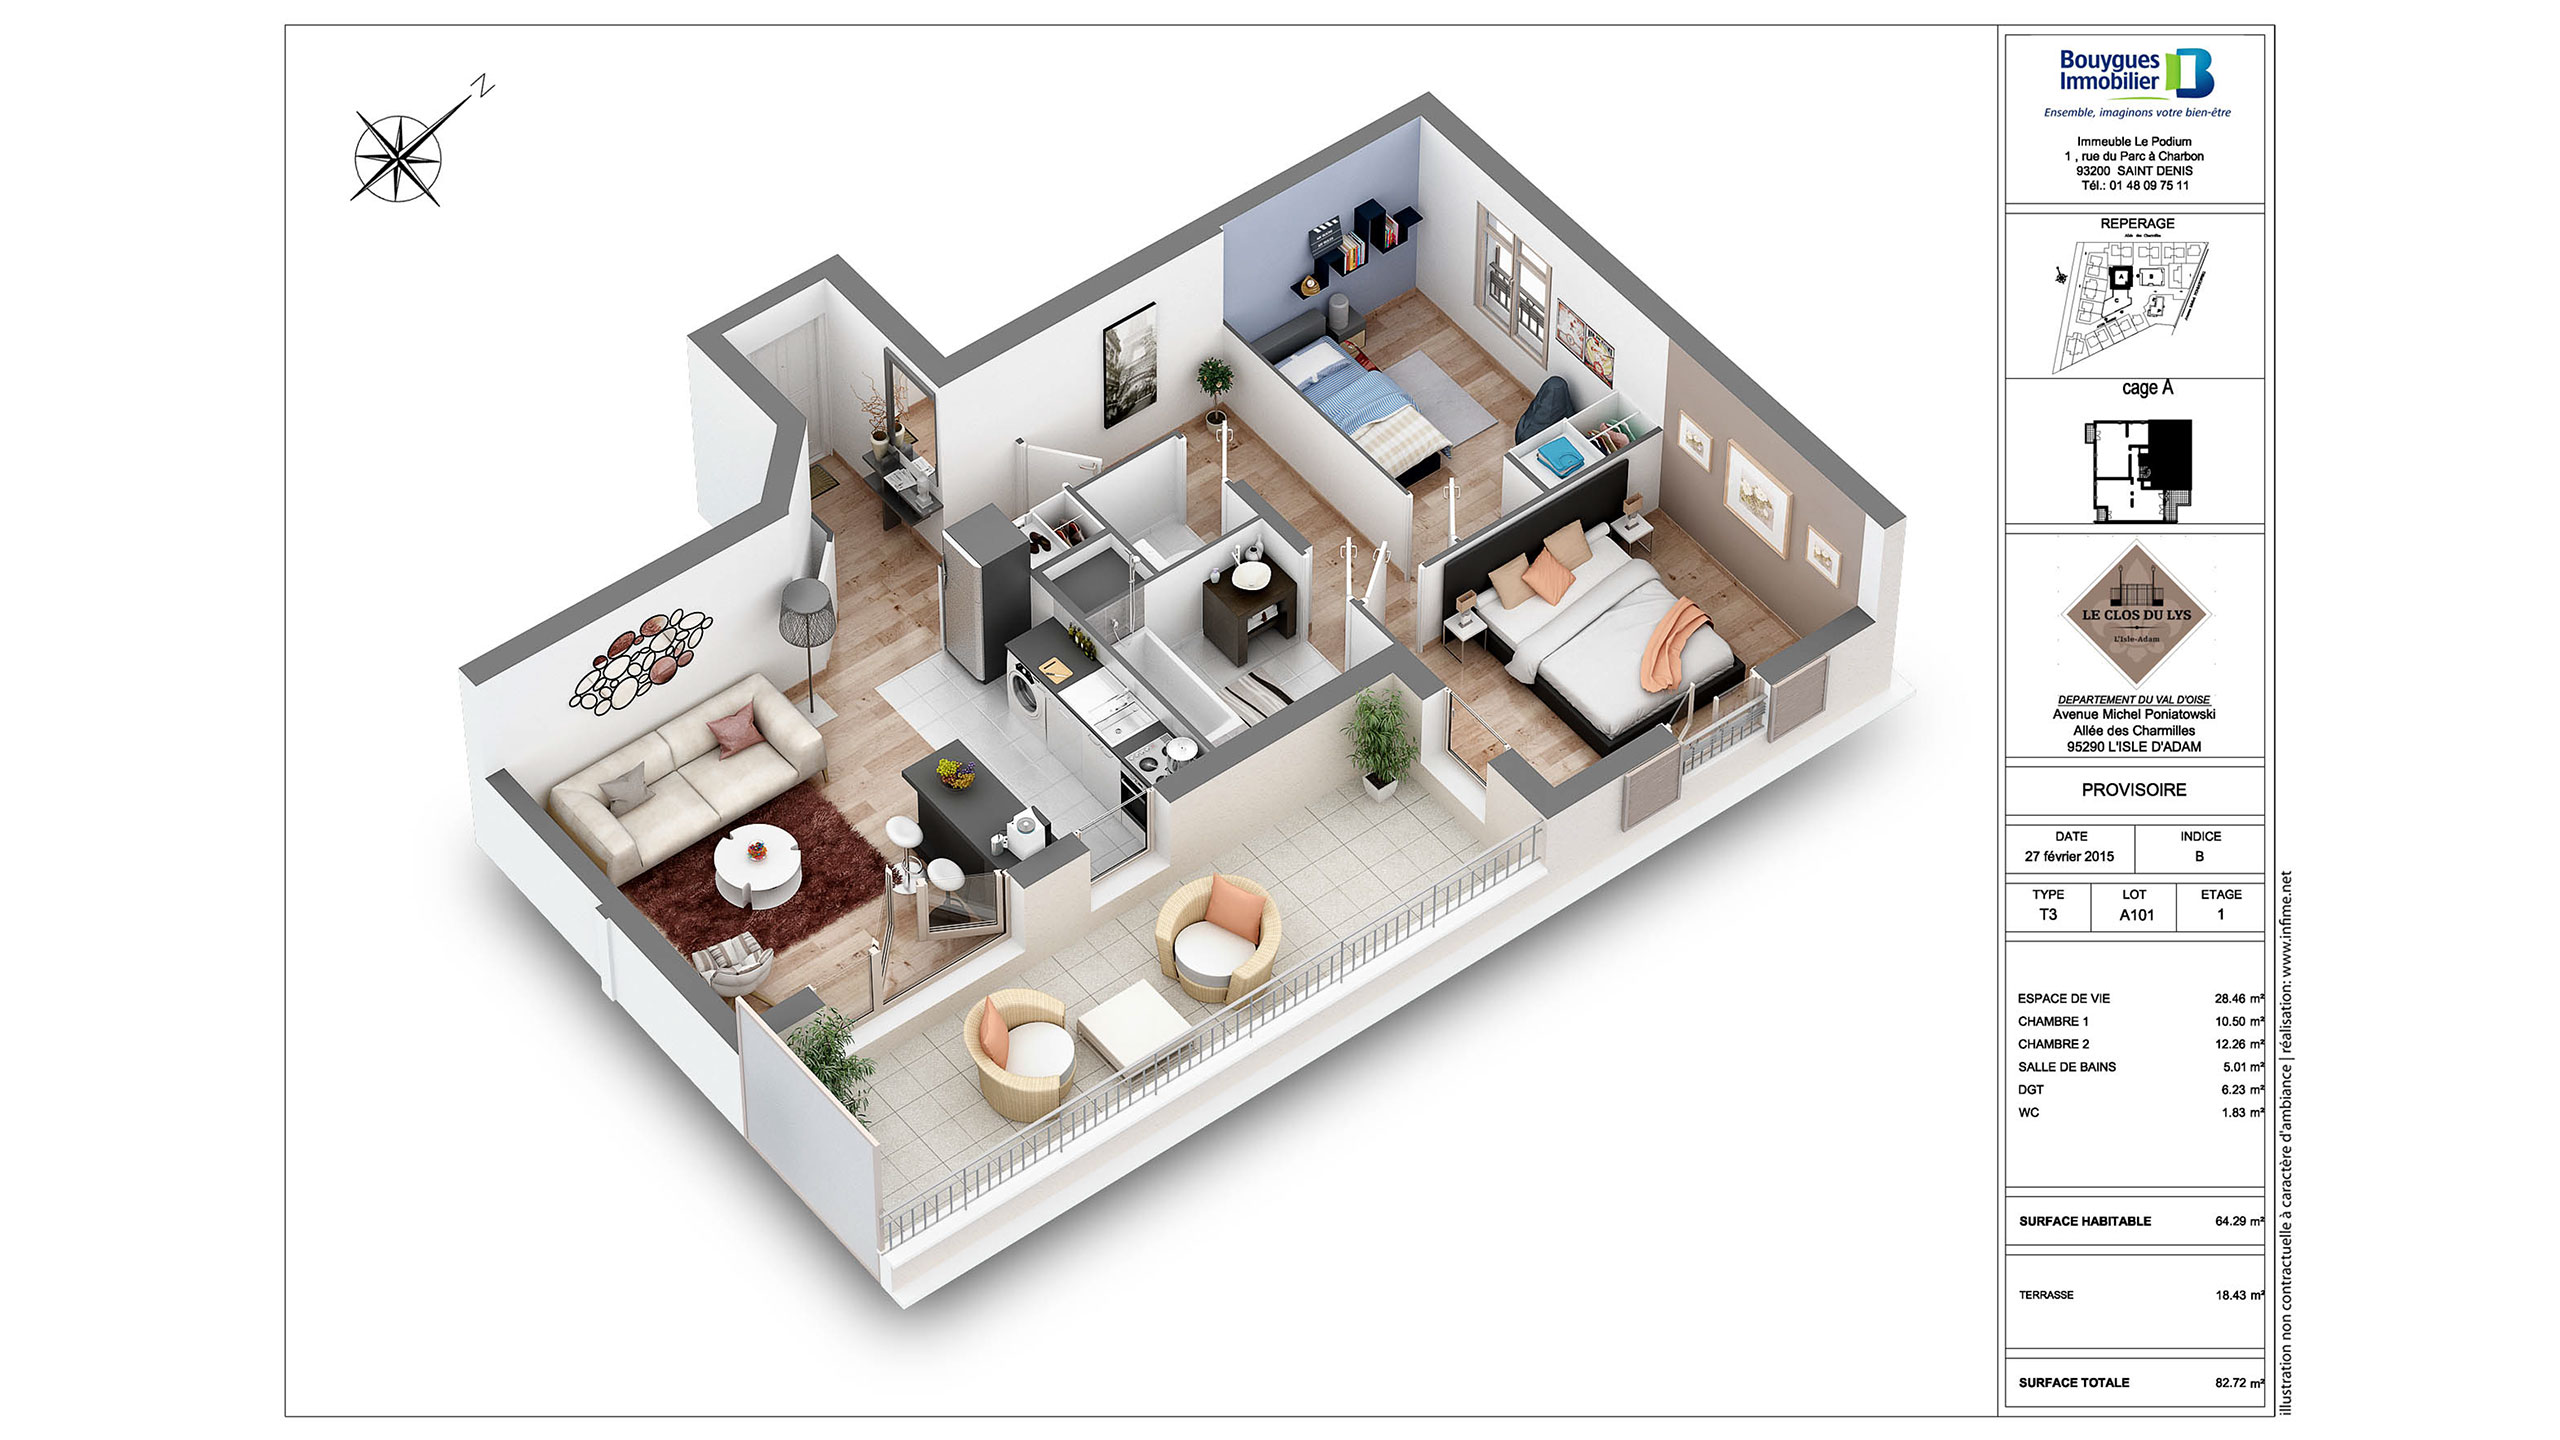 plan appartement bouygues